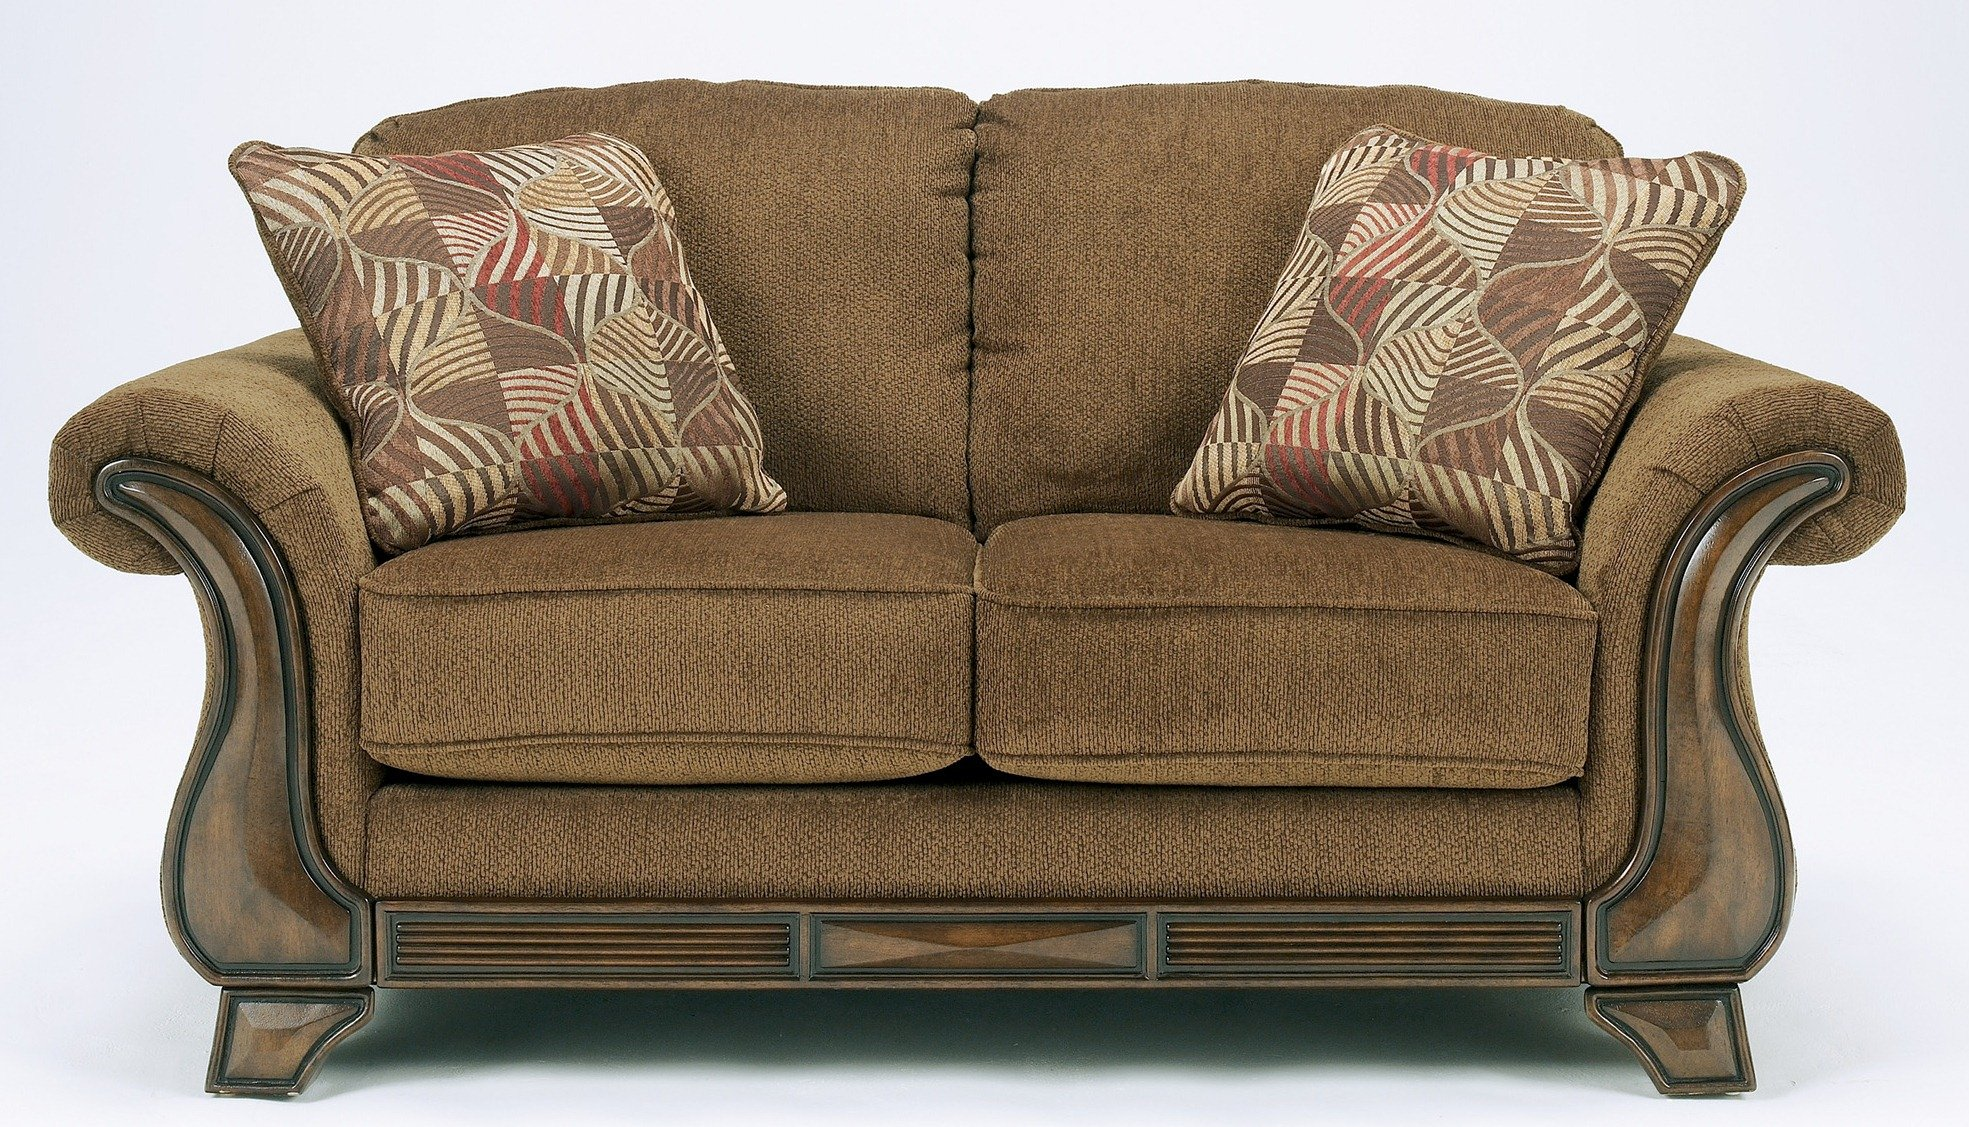 Ashley Furniture Signature Design - Montgomery Loveseat Sofa - Traditional Style Couch - Mocha Brown